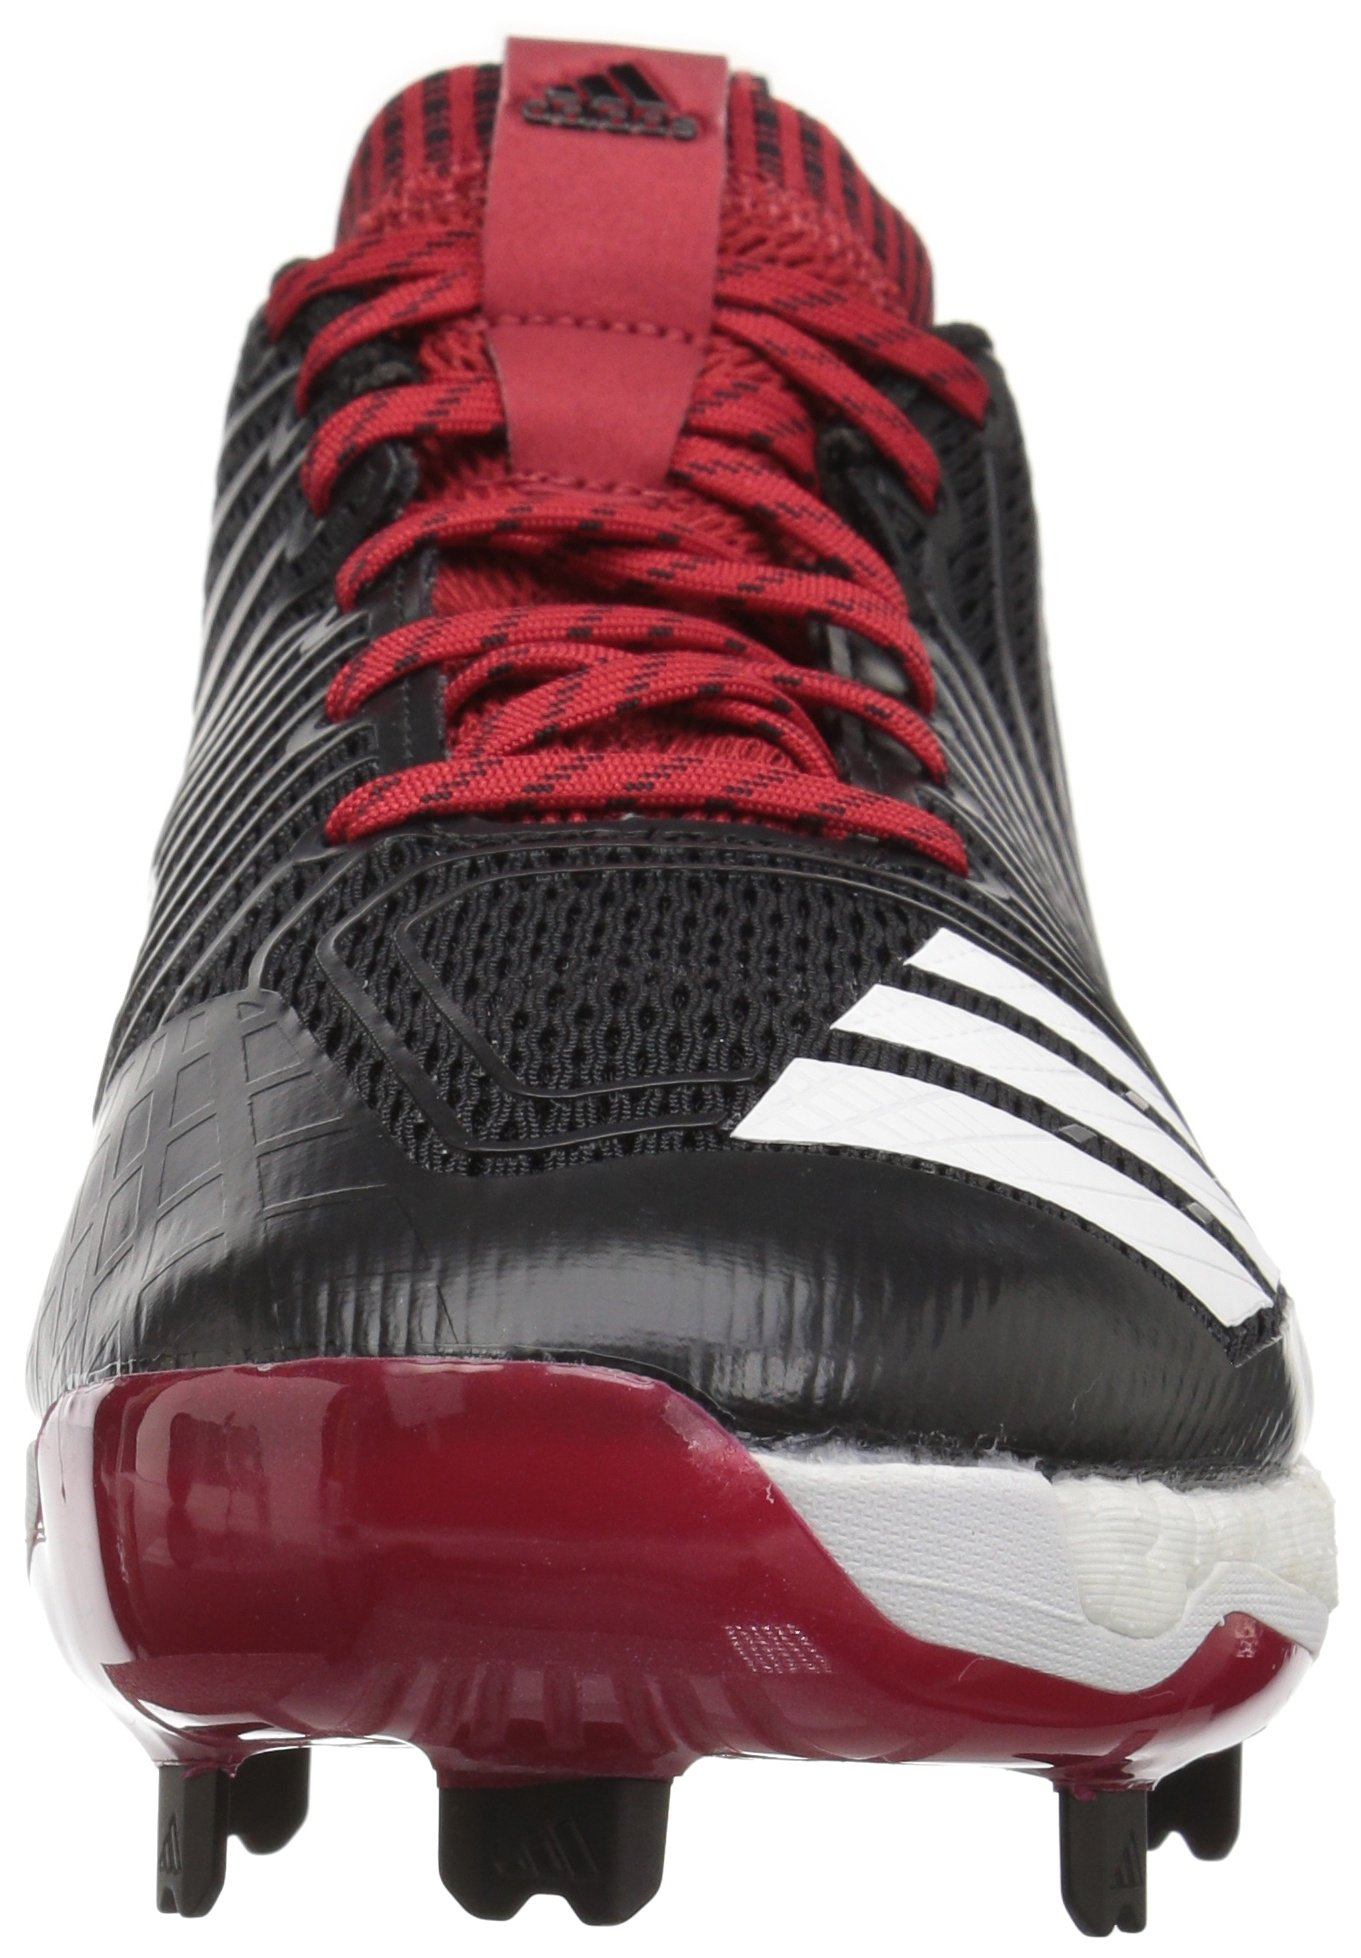 adidas Men's Freak X Carbon Mid Baseball Shoe, Black/White/Power RED, 7.5 Medium US by adidas (Image #4)